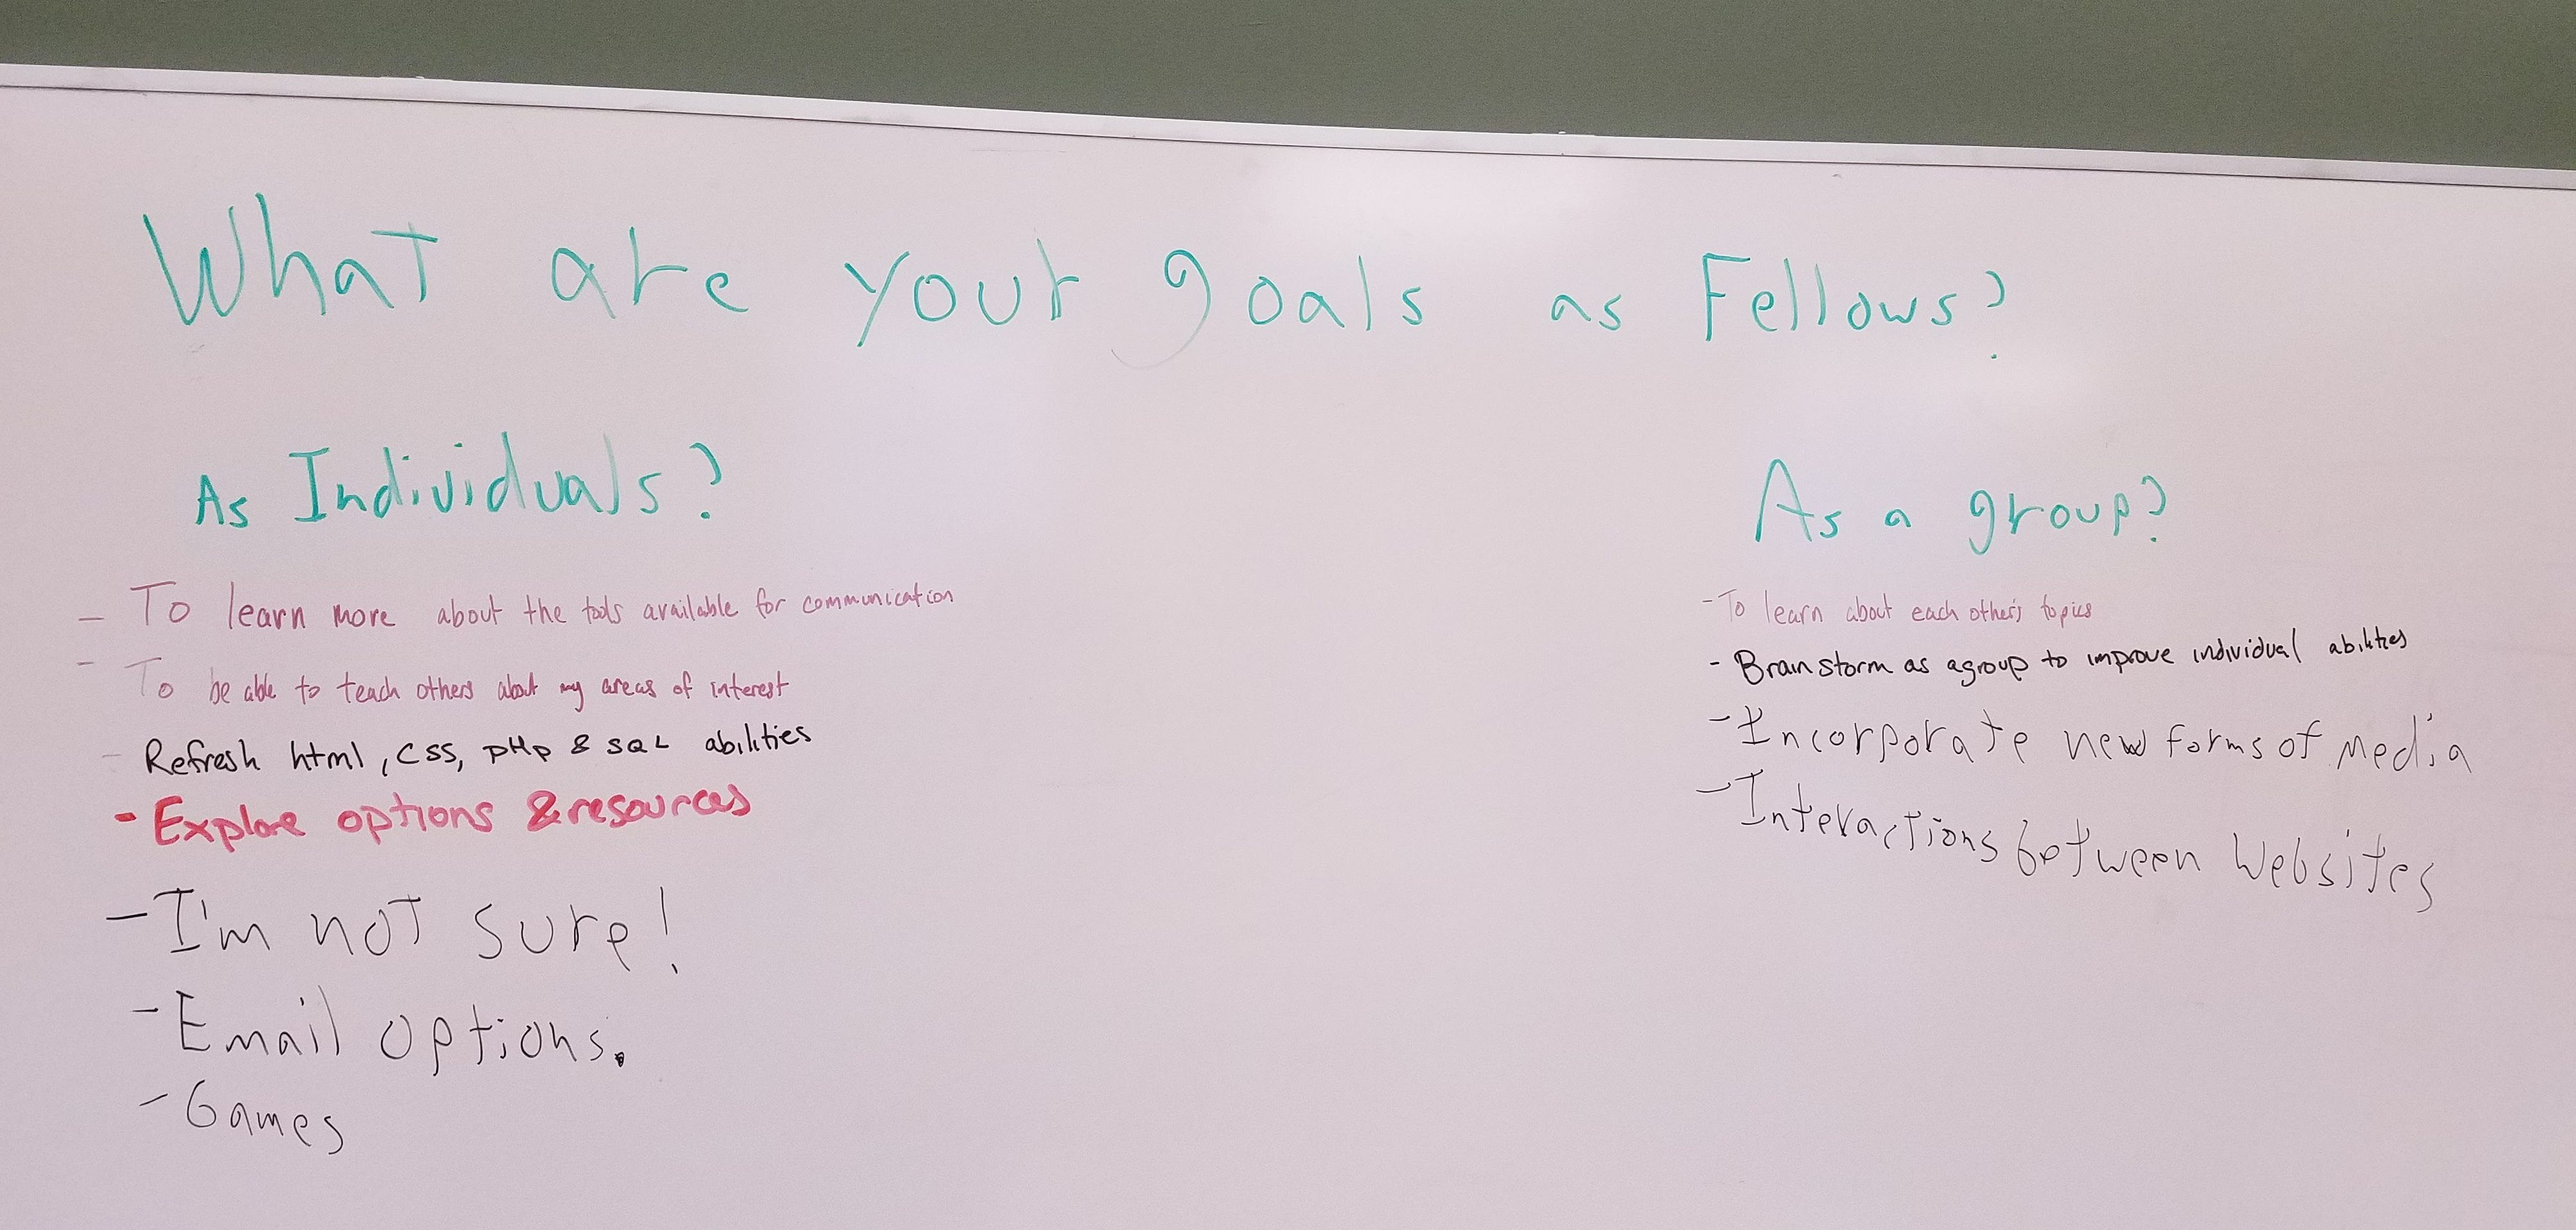 Whiteboard record of Fellows' goals (transcript follows)